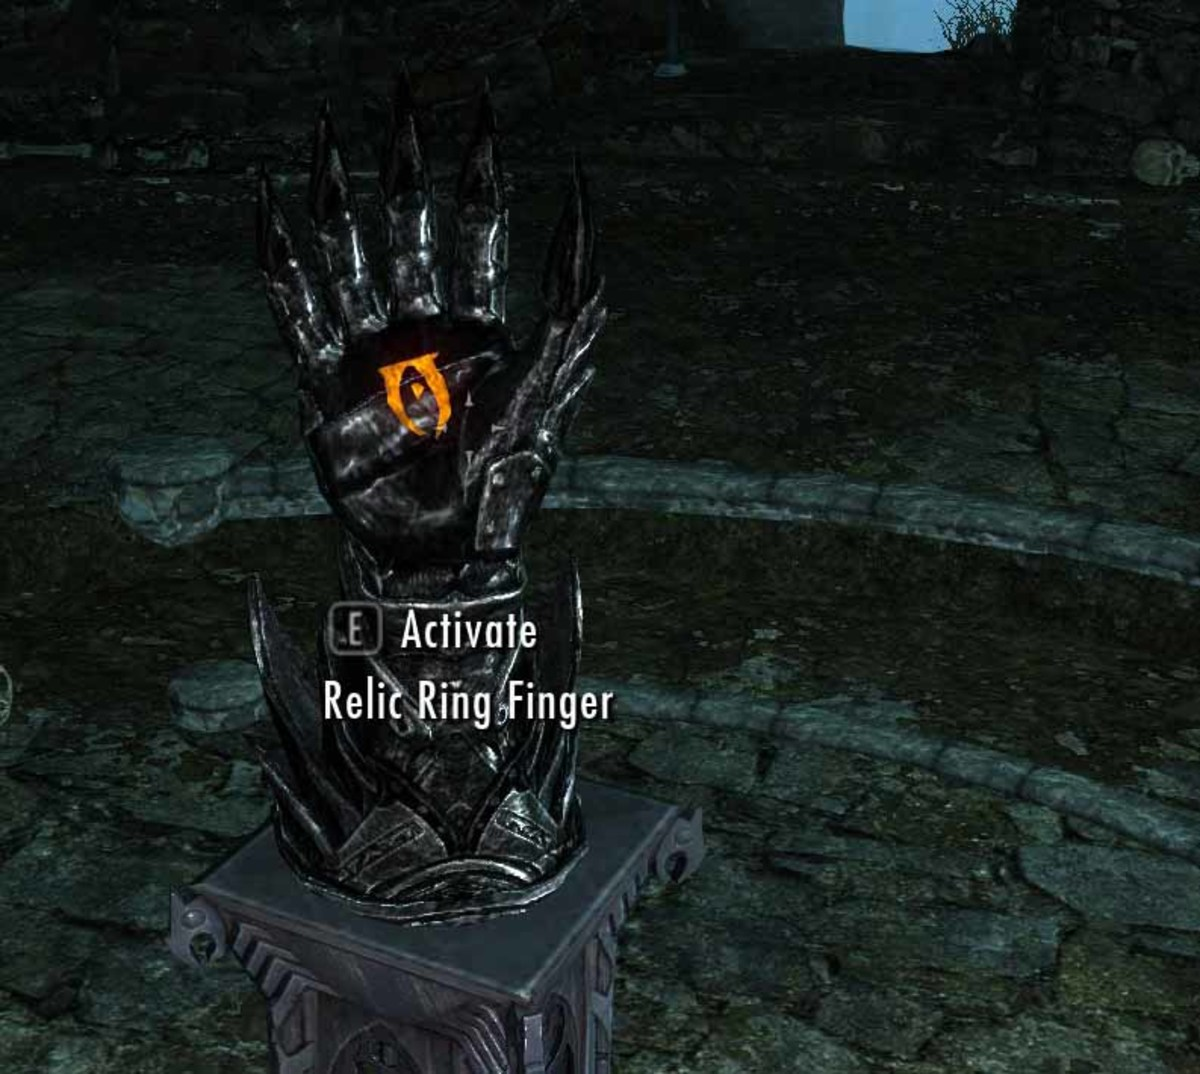 The Daedric Hand Puzzle in the Midden Dark.